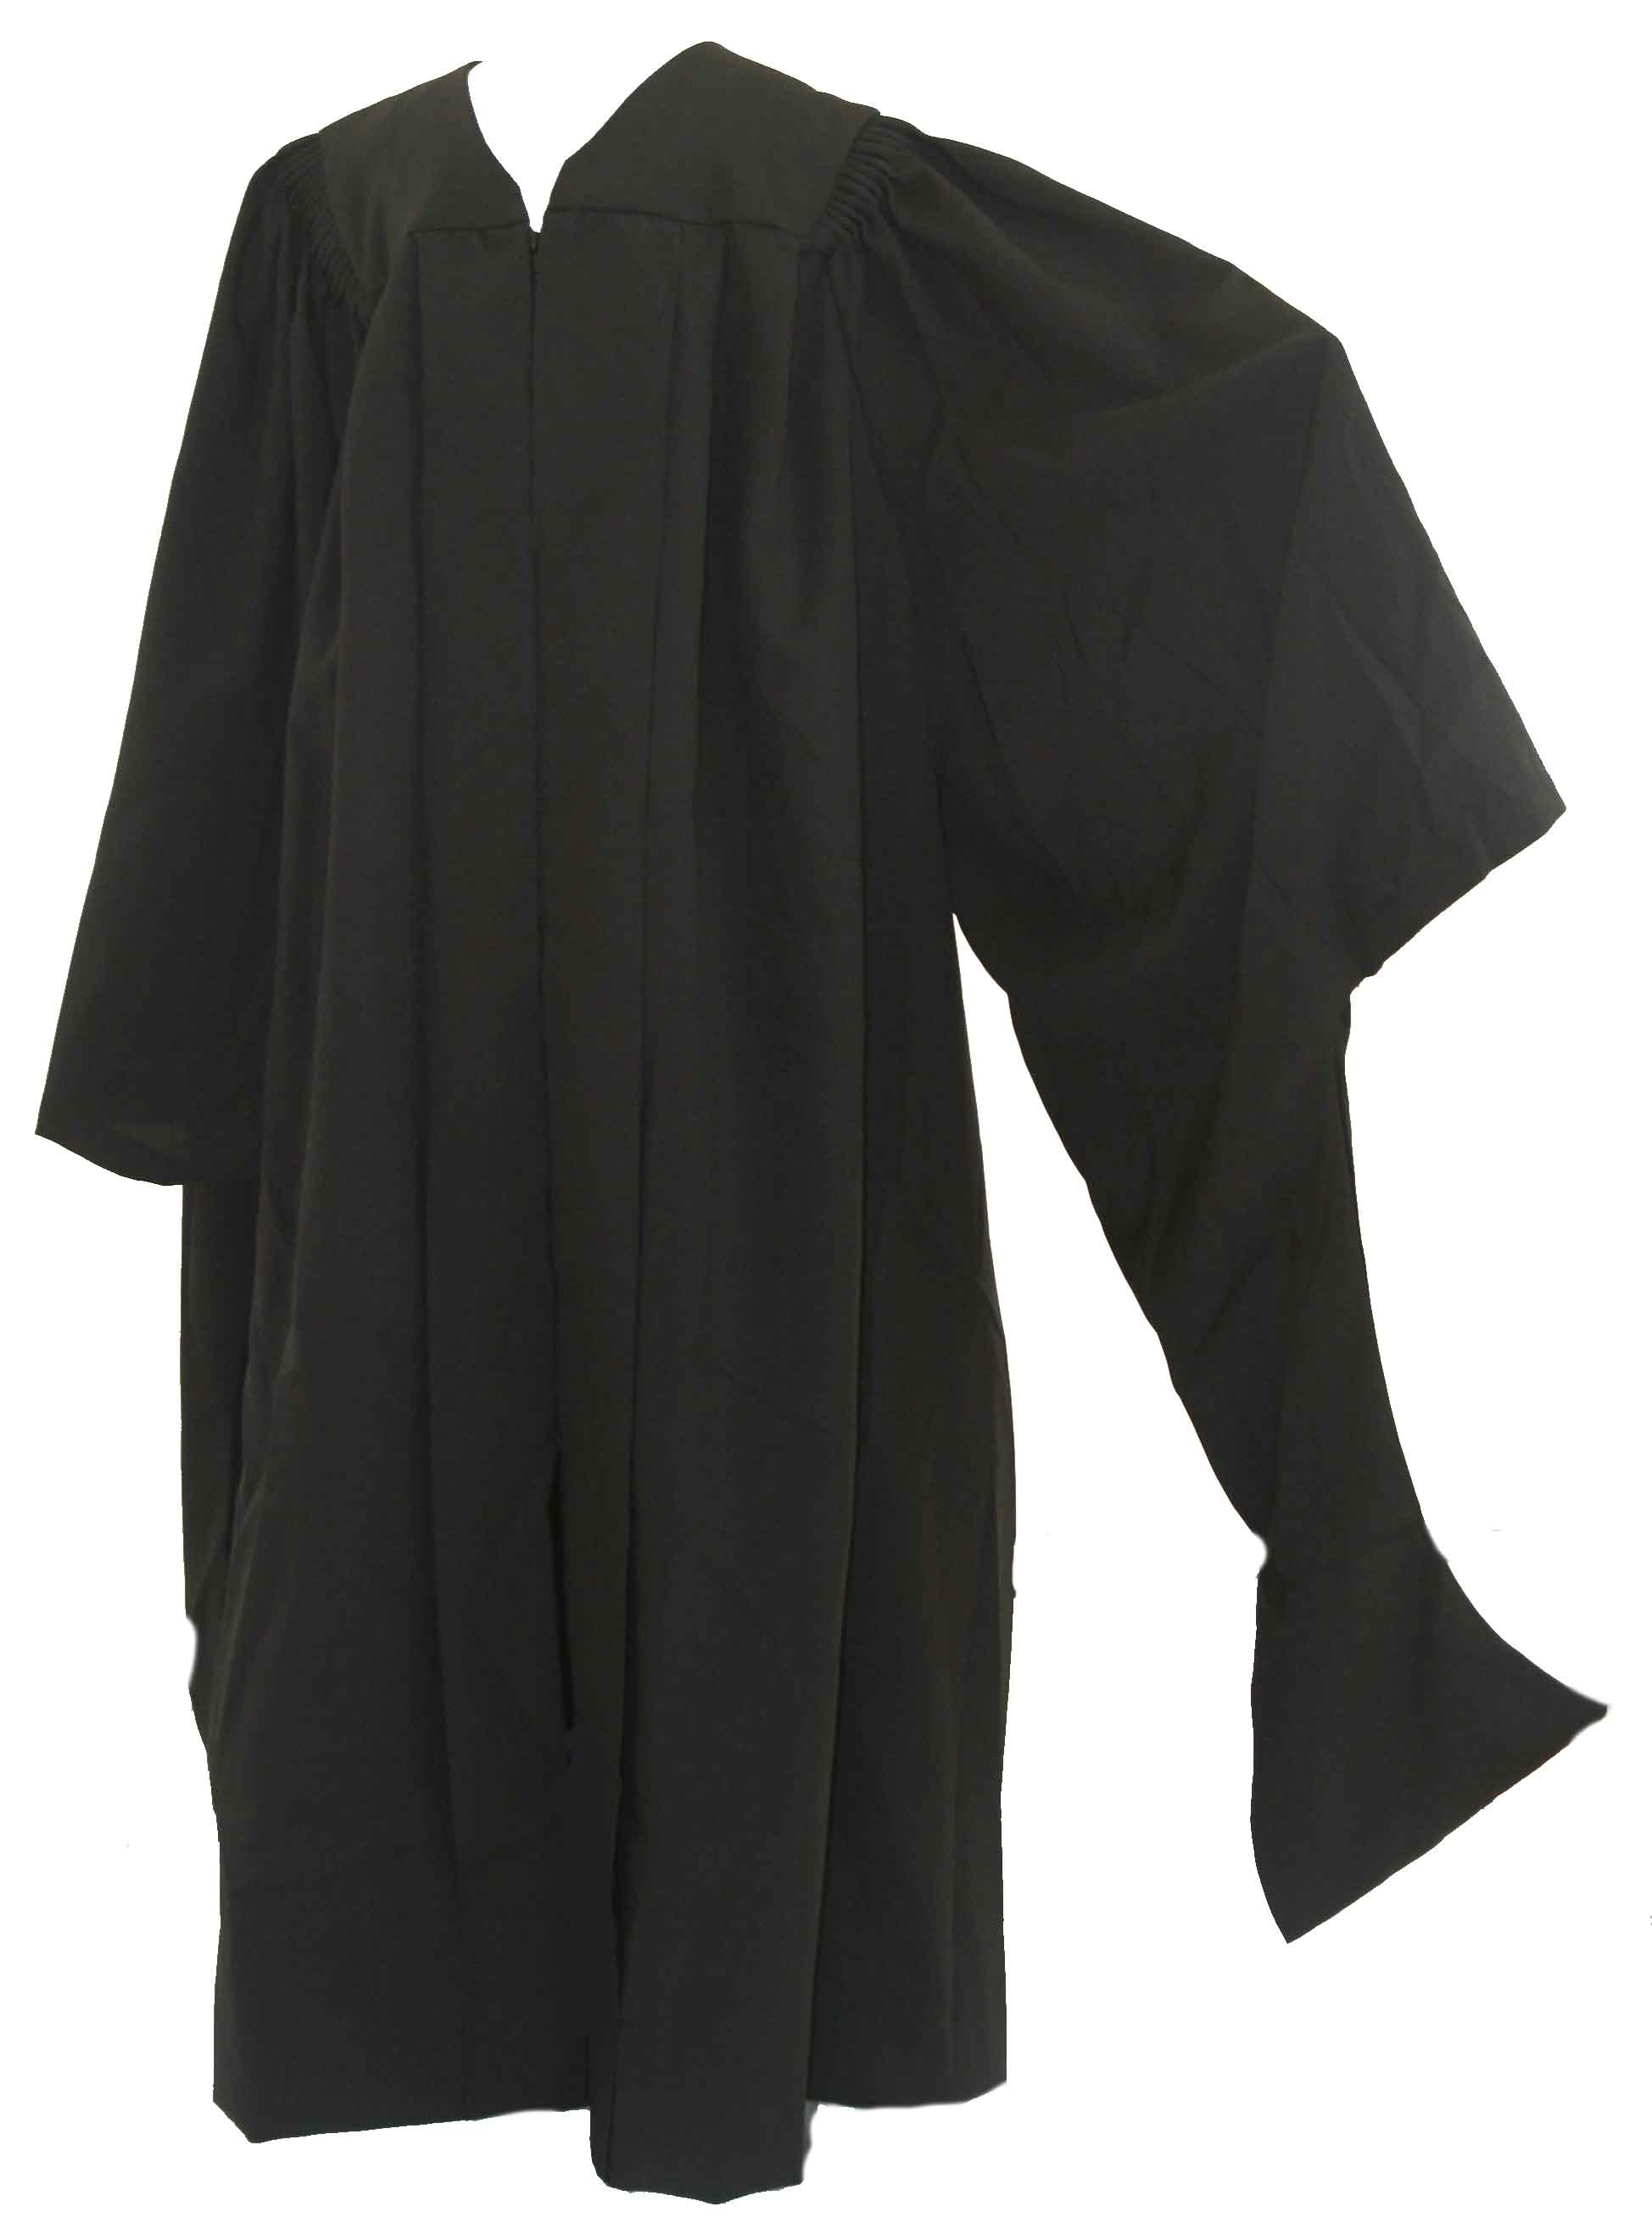 masters gown - Ideal.vistalist.co